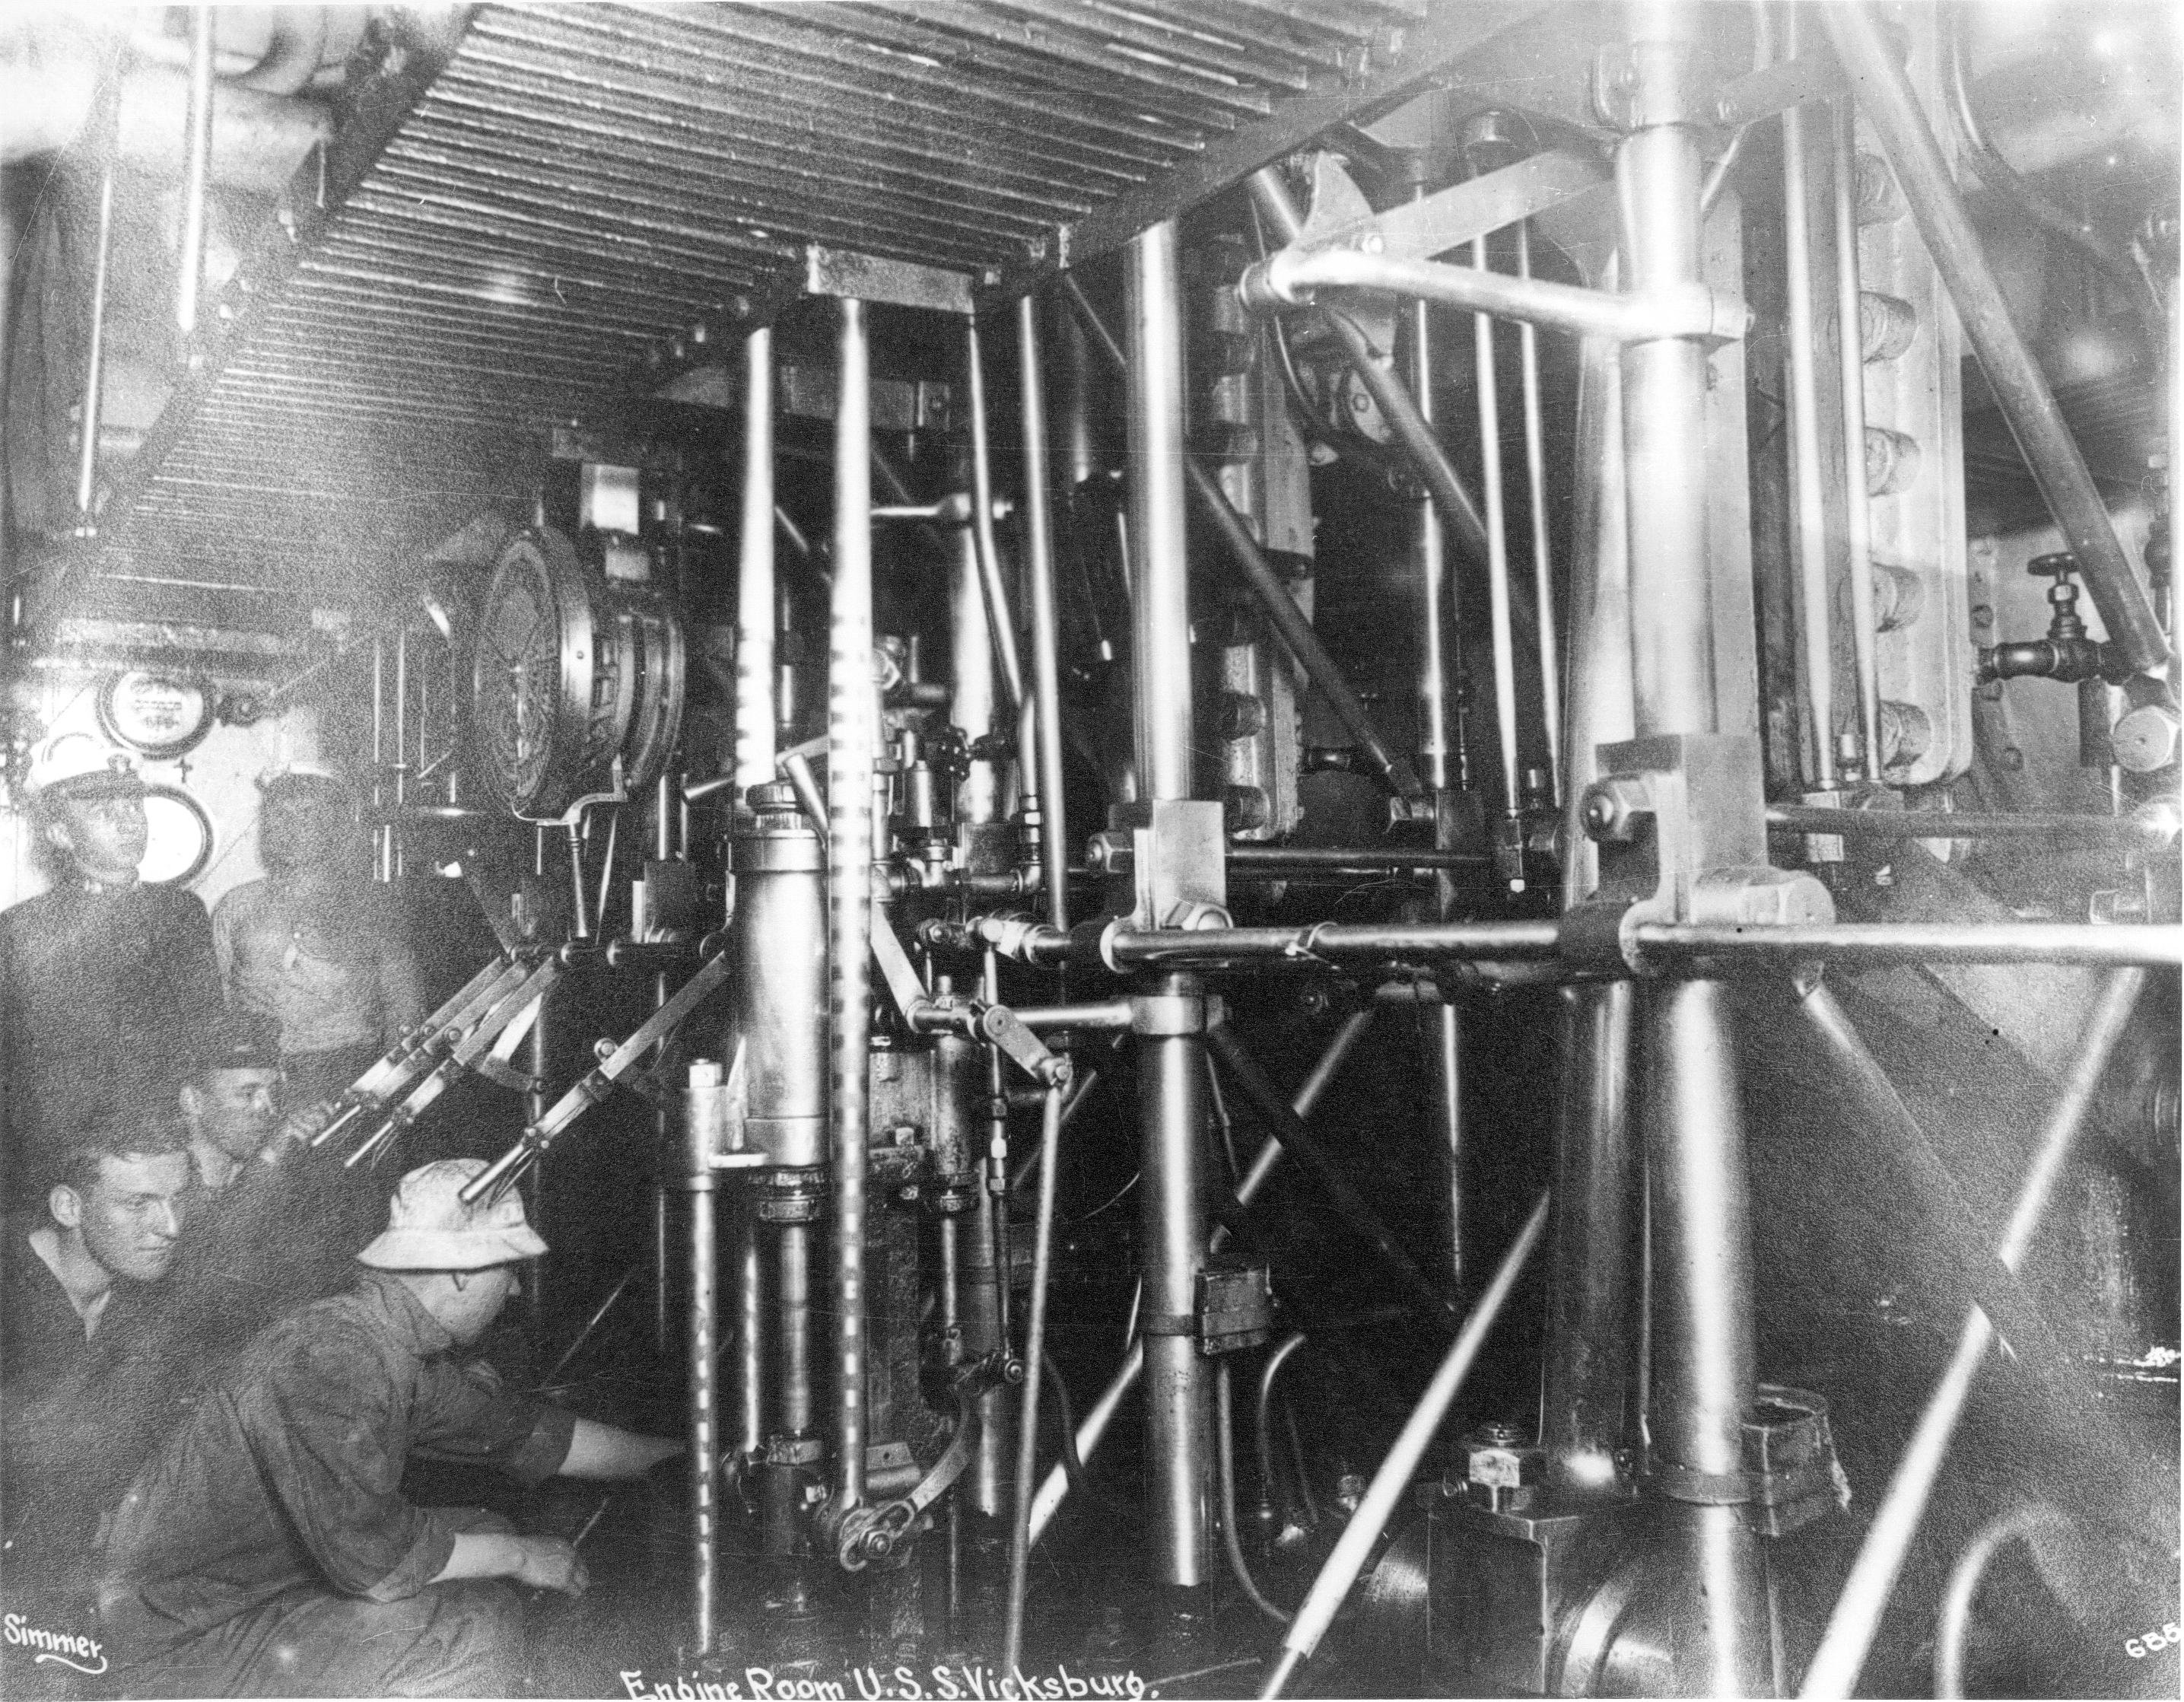 Engine Room, USS Vicksburg, 1915